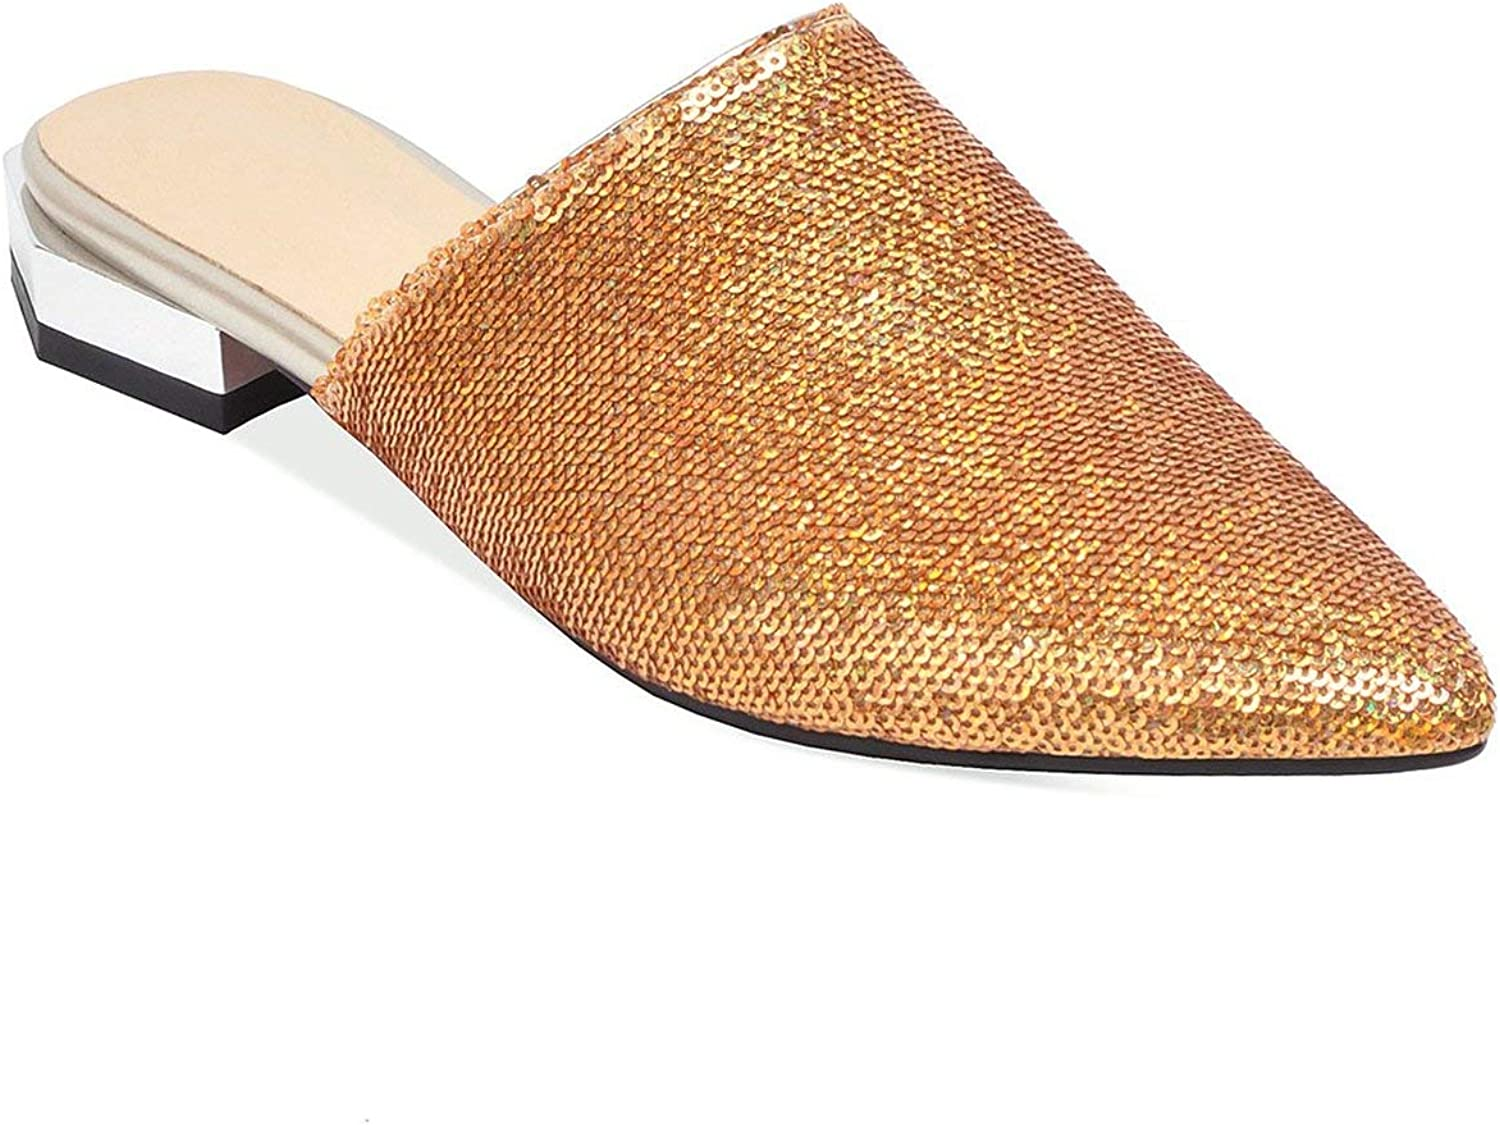 The rest of my life gold Mules shoes Women Bling Slippers Pointed Toe Sequined Cloth Flat Loafers Shiny Women shoes Size 45 46 47 48